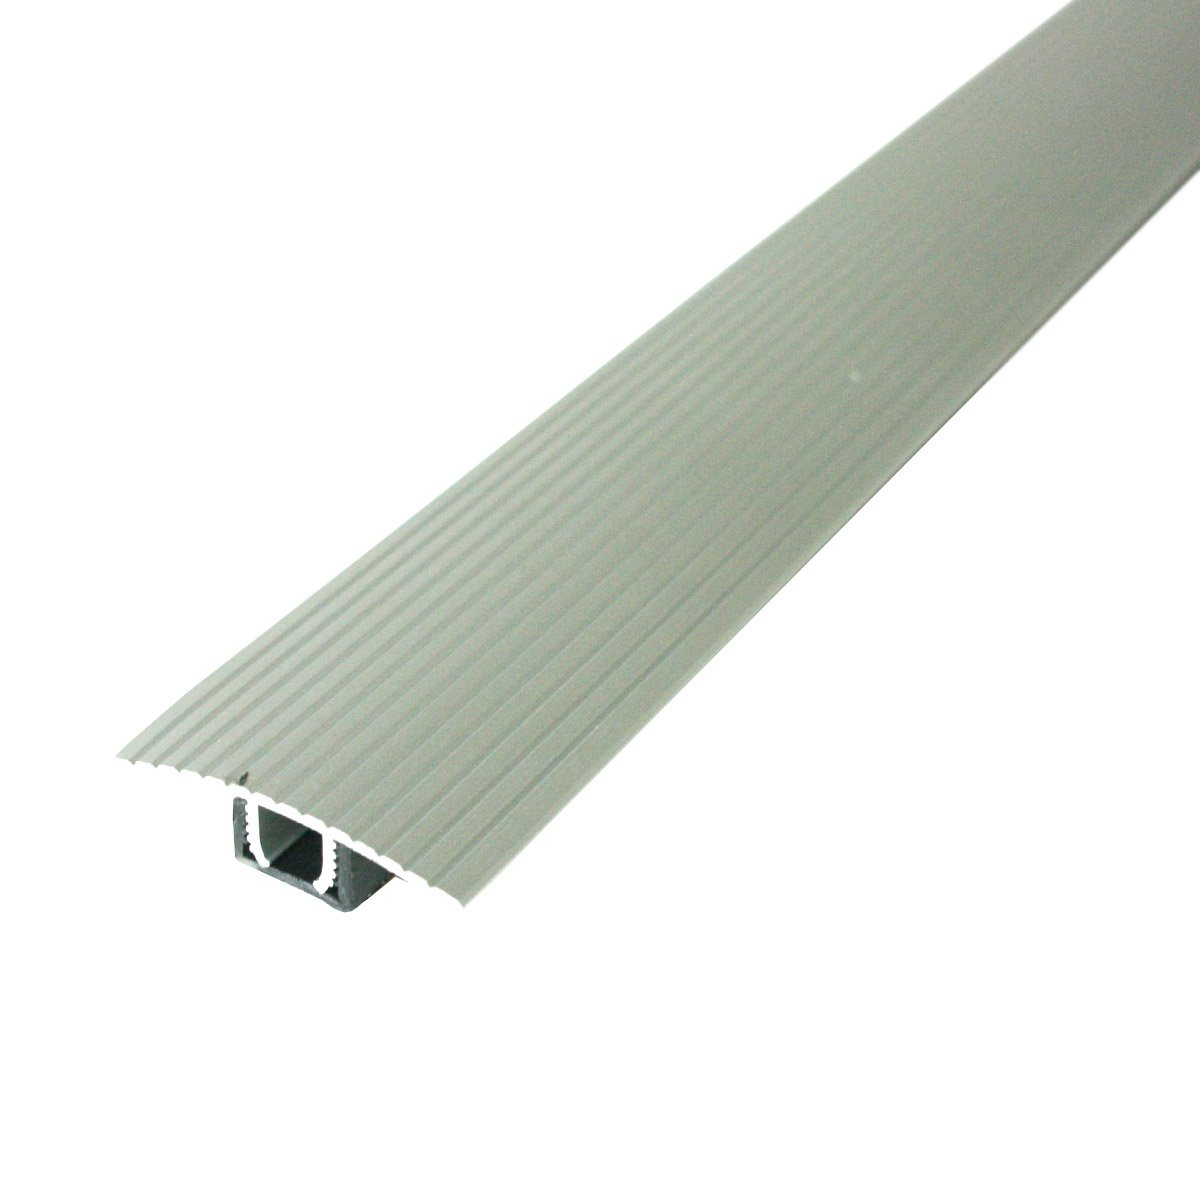 M-D Building Products Cinch T-Molding w/SnapTrack (Fluted) 36' Satin Silver Satin Silver 43321